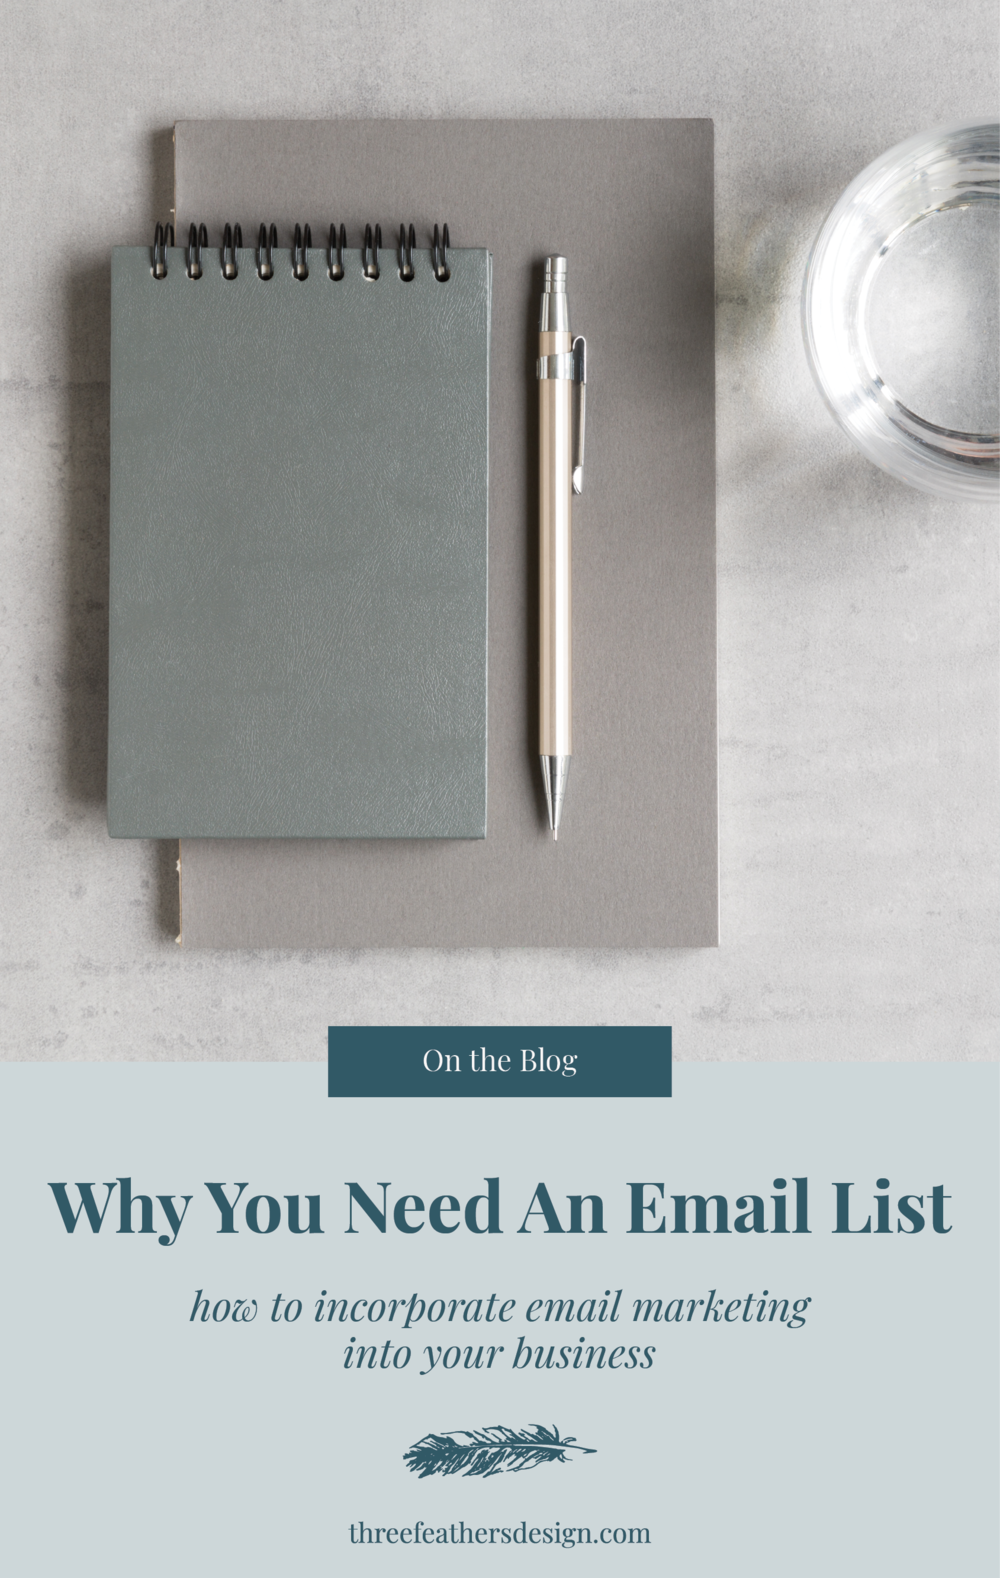 Why You Need An Email List | Three Feathers Design | threefeathersdesign.com